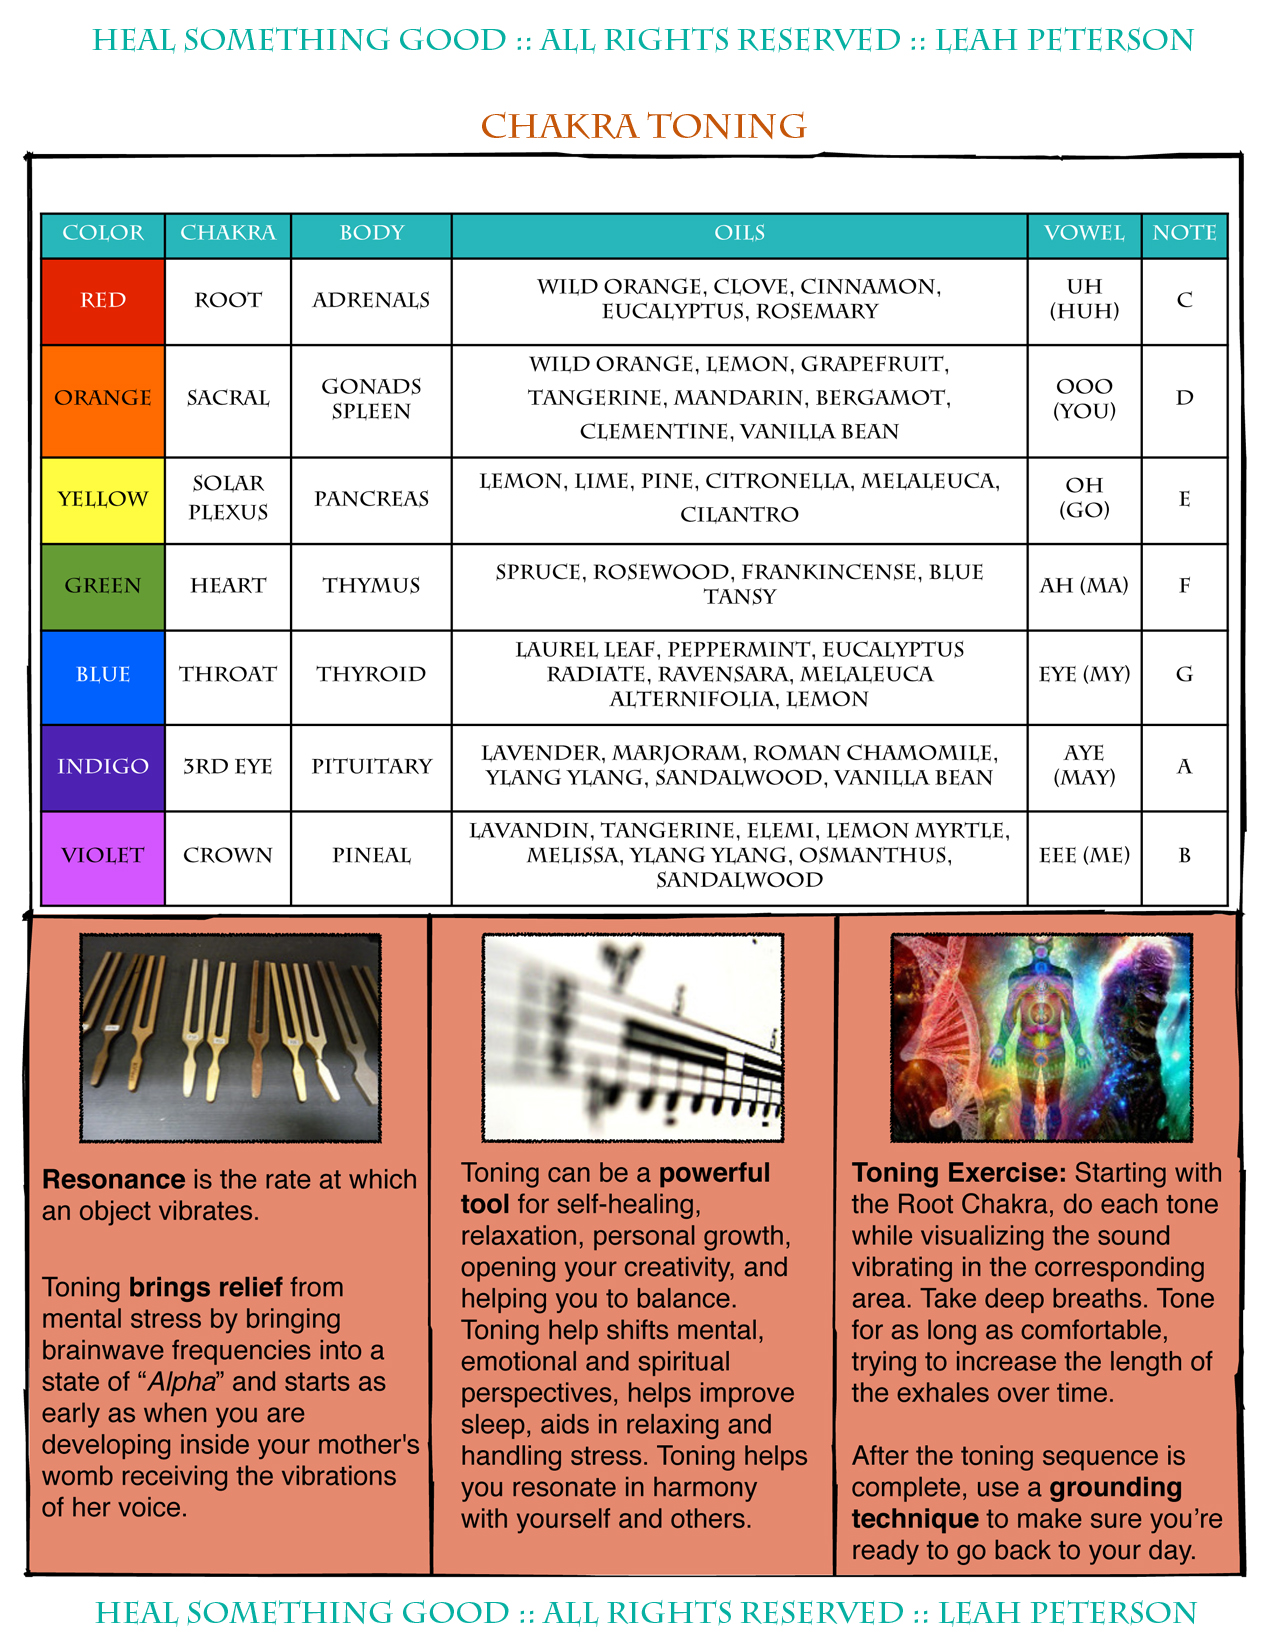 Chart Chakra Toning Heal Something Good